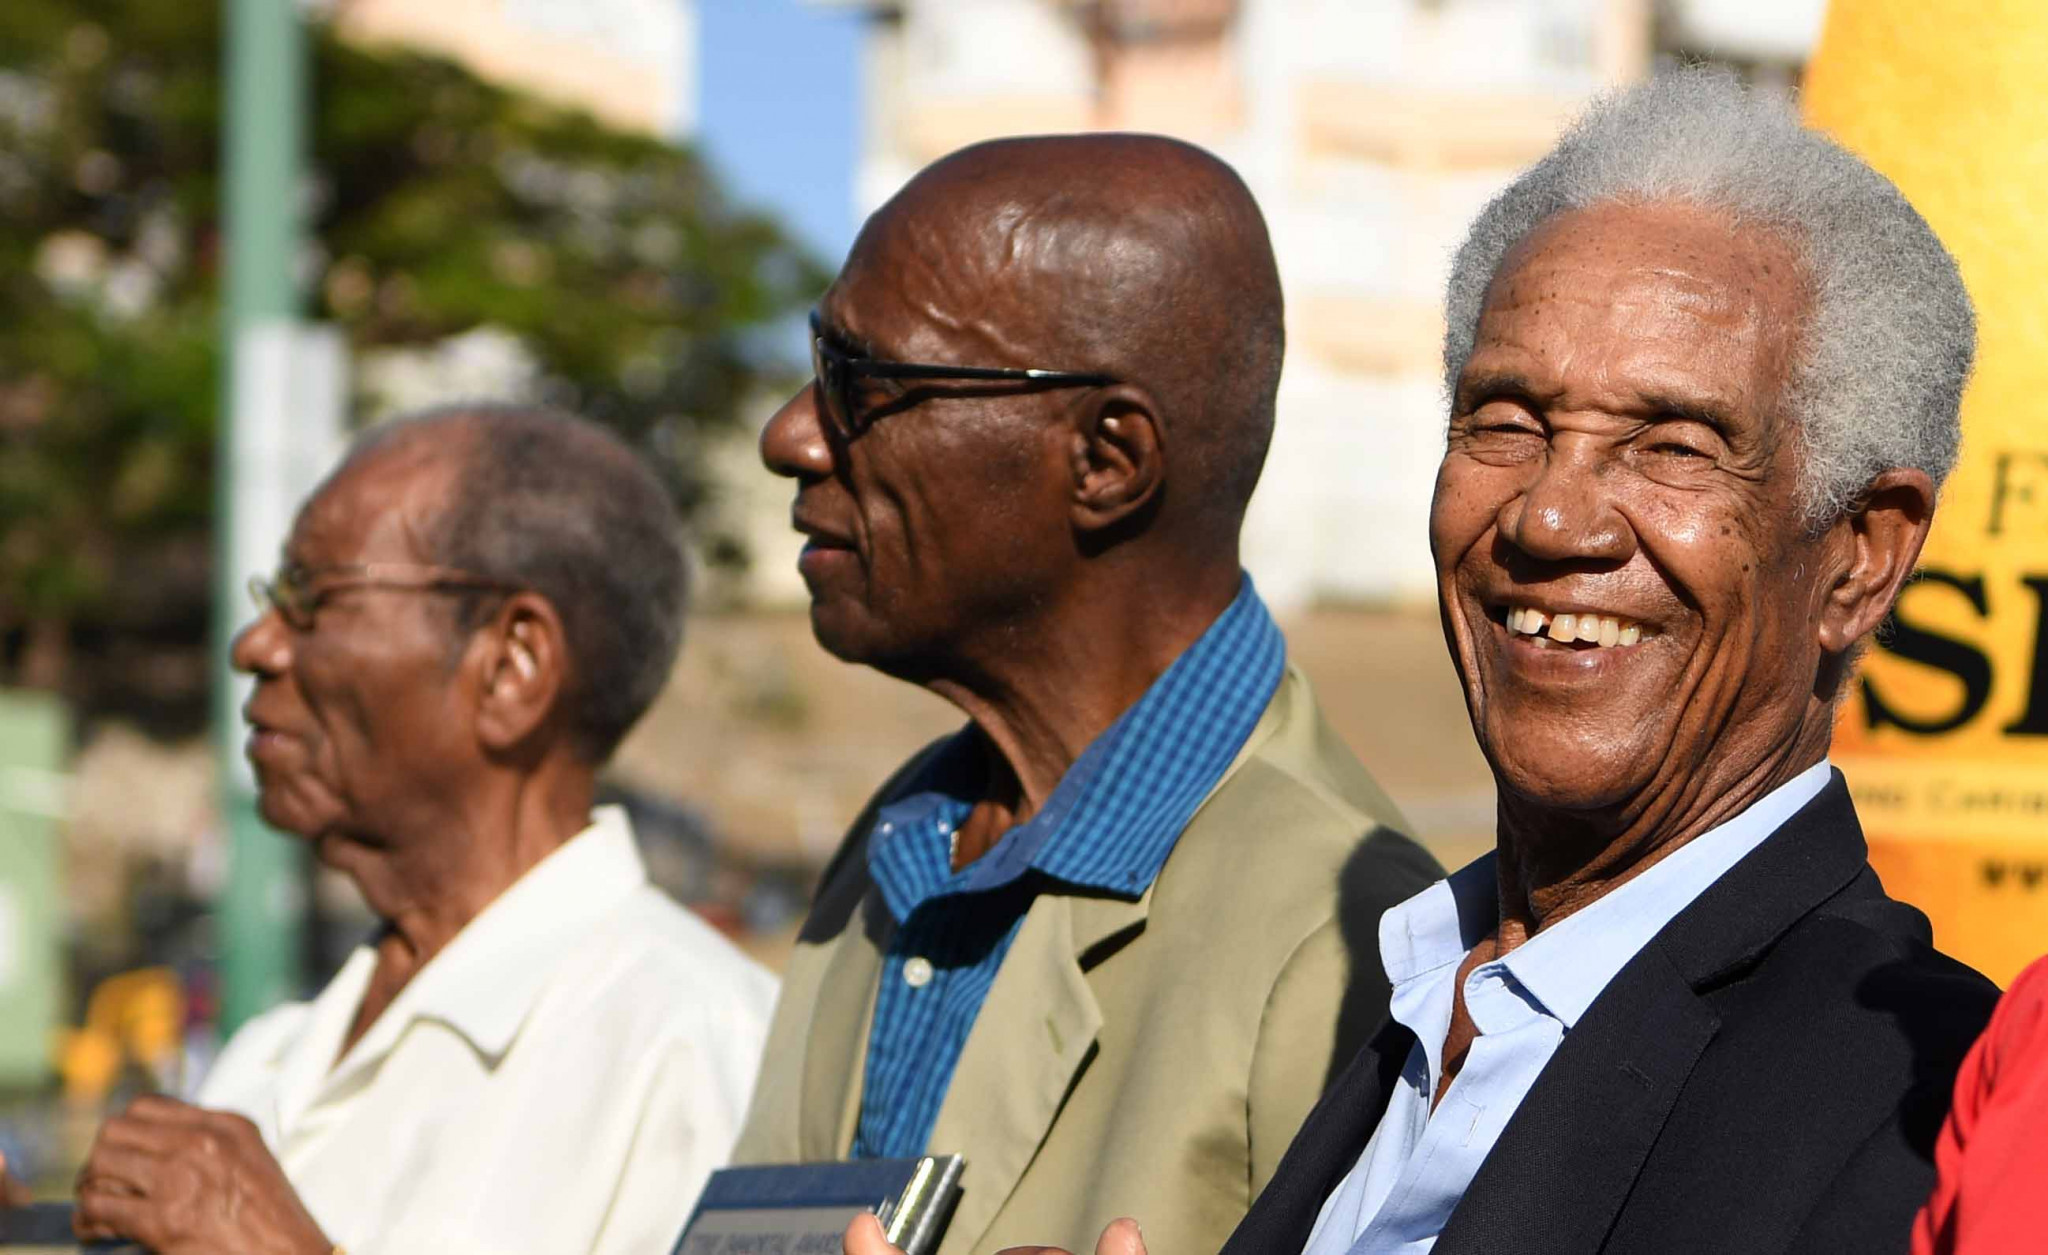 Sir Wes Hall, pictured, centre, with Sir Everton Weekes and Sir Garfield Sobers this year during a one-day tour match between England and The University of West Indies Vice Chancellor's XI in Bridgetown, Barbados. When Hall was Barbados's Sports Minister in 1988 he took a call from Indian PM Rajiv Gandhi which effectively ended Barbados plans to bid for the 1998 Commonwealth Games ©Getty Images